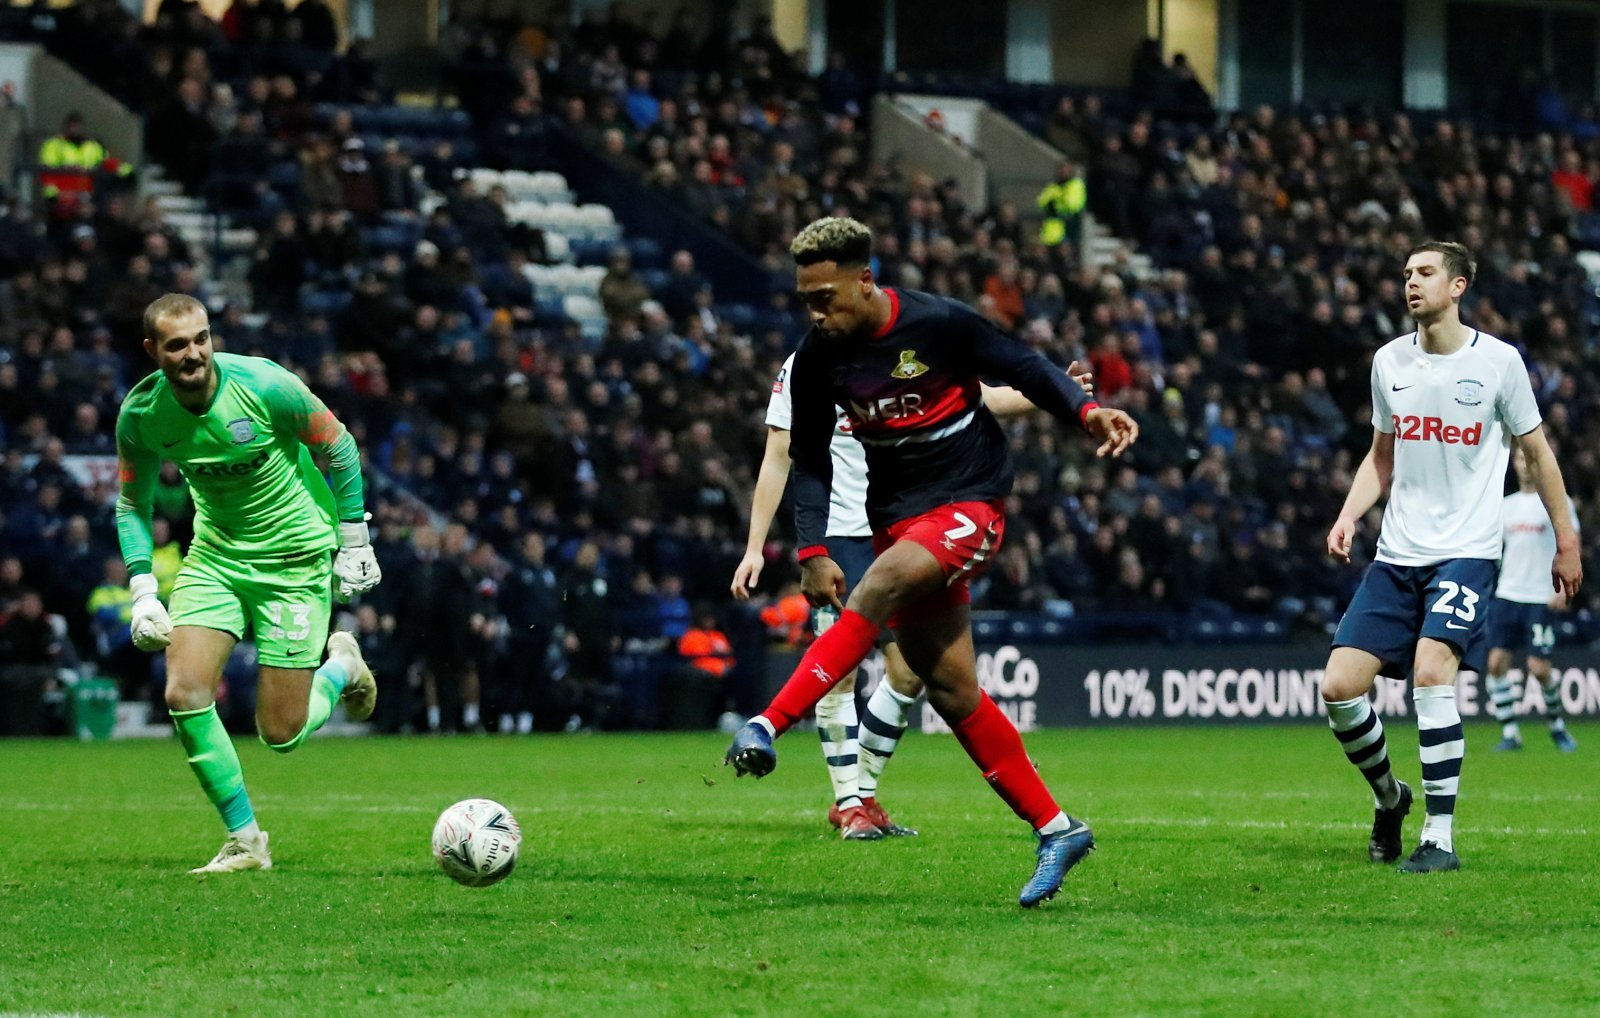 Doncaster: McCann must go all-out to re-sign Mallik Wilks this summer